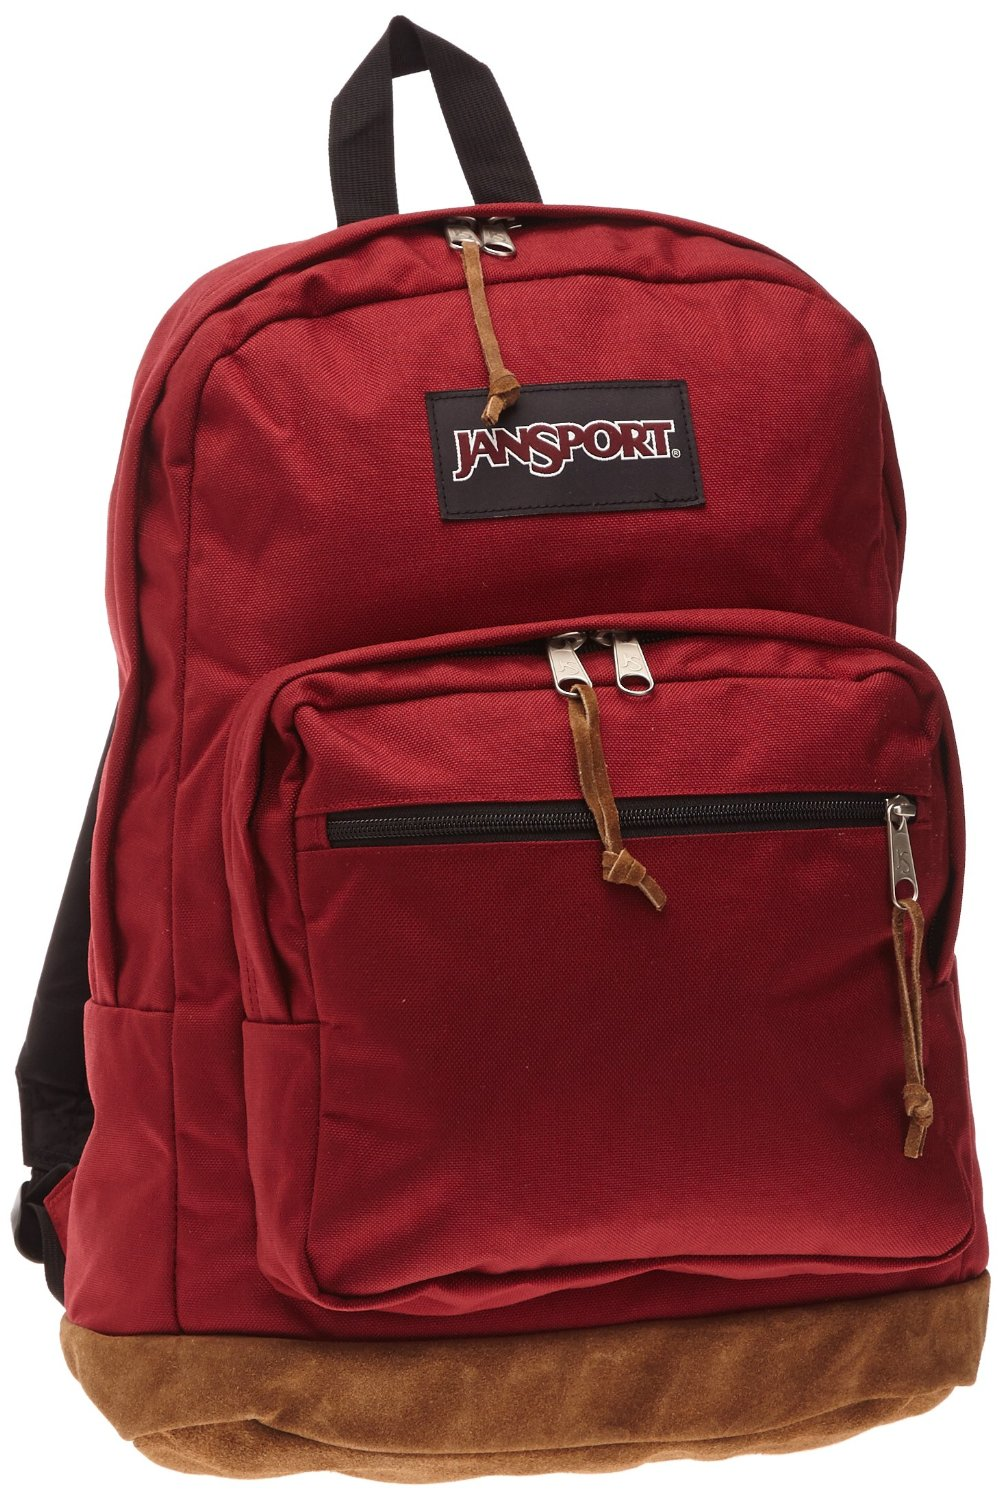 Jansport Maroon Backpack lk4BBTov